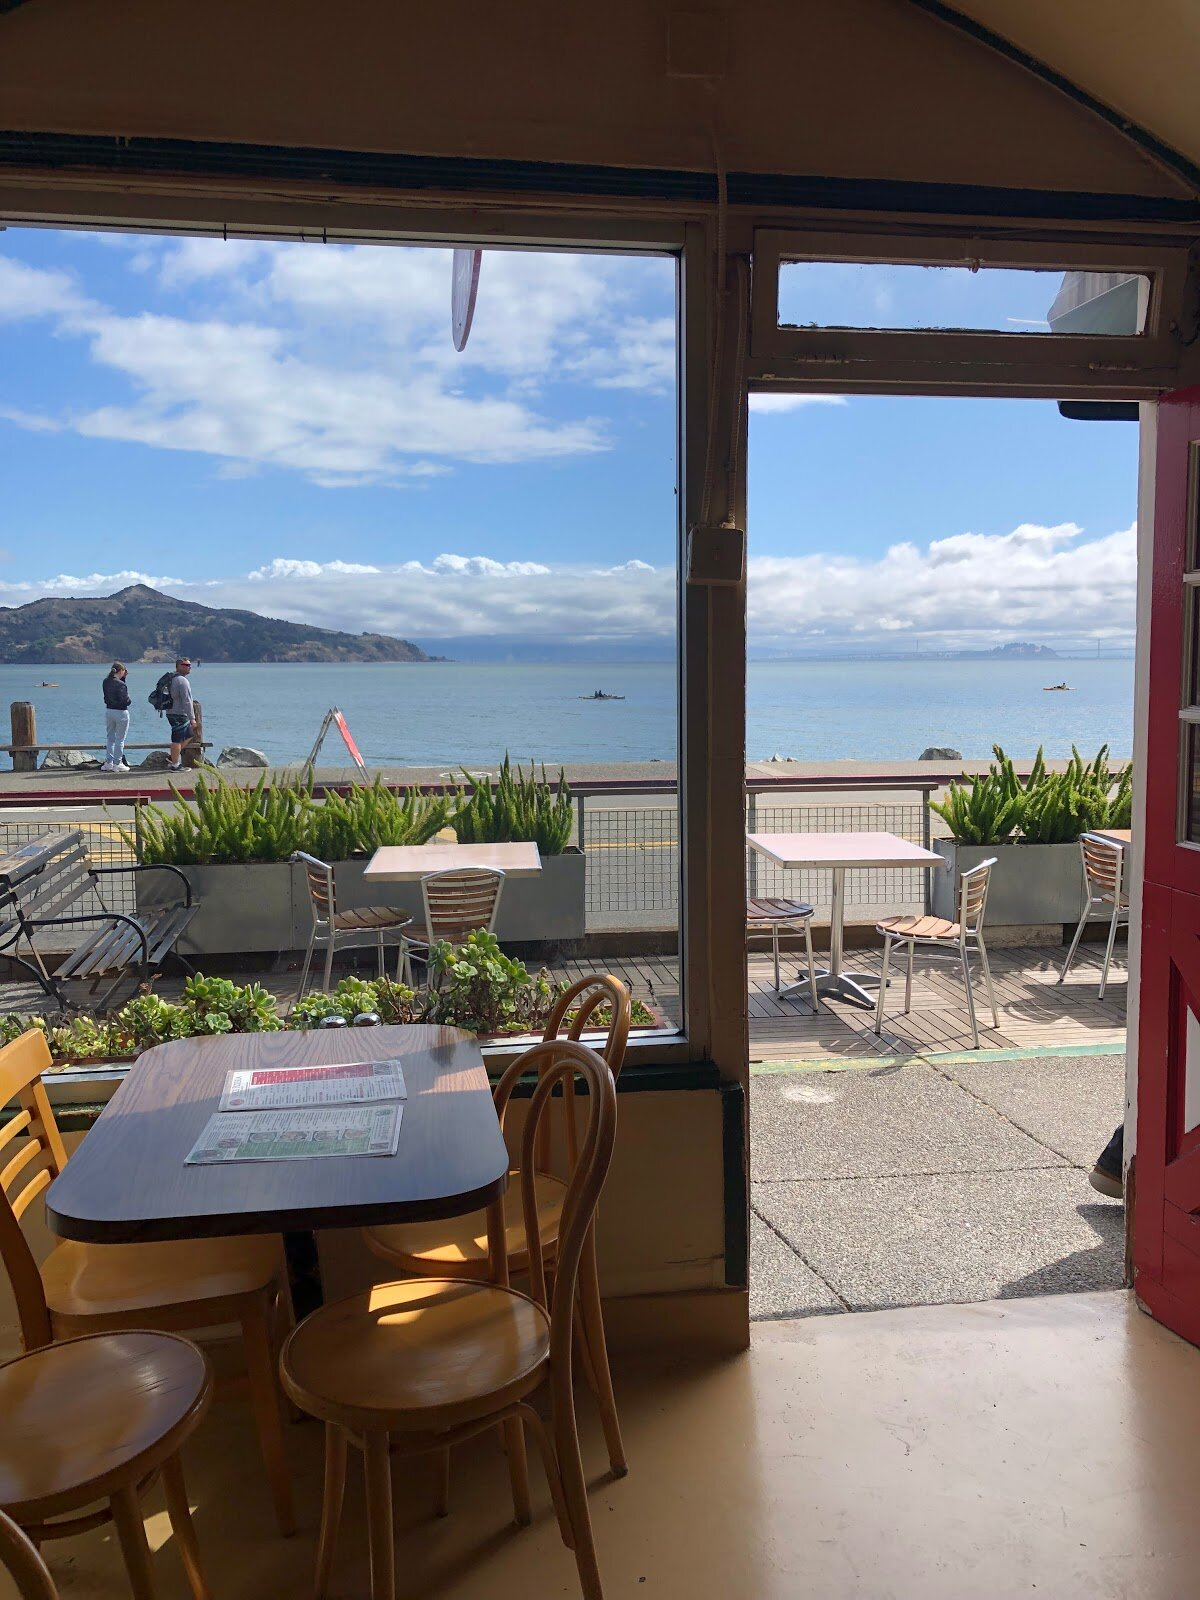 Outside seating in Sausalito with view of the San Francisco Bay